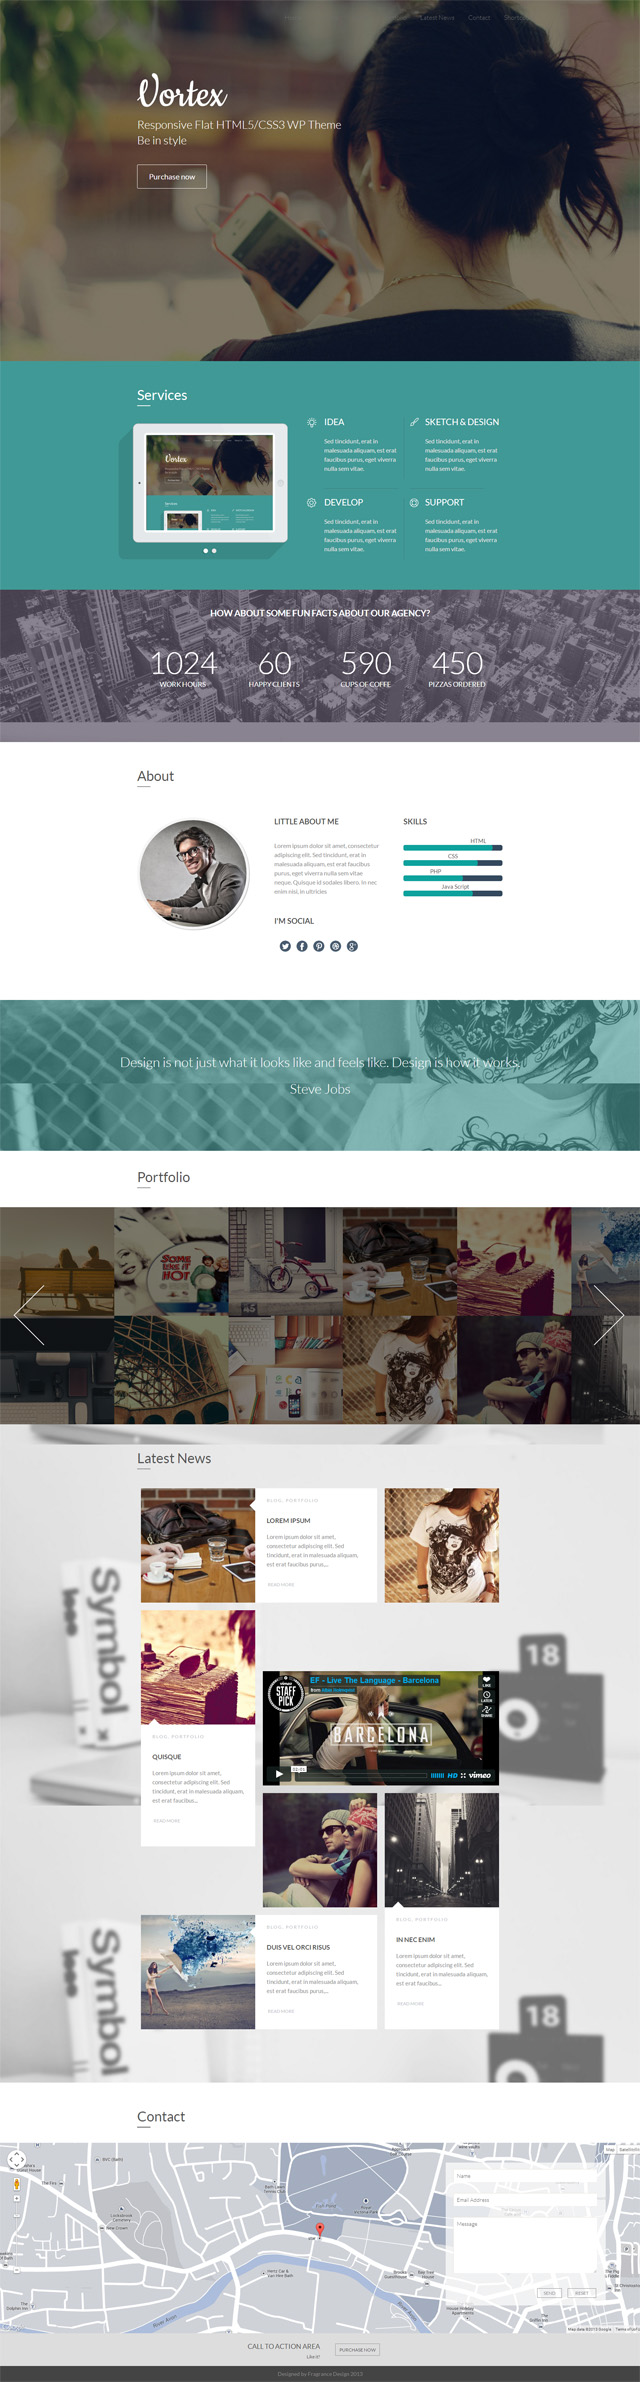 43 Of The Best Wordpress One Page Themes Single Page Parallax Landing Page Web Design Trends Wordpress Website Design Web Design